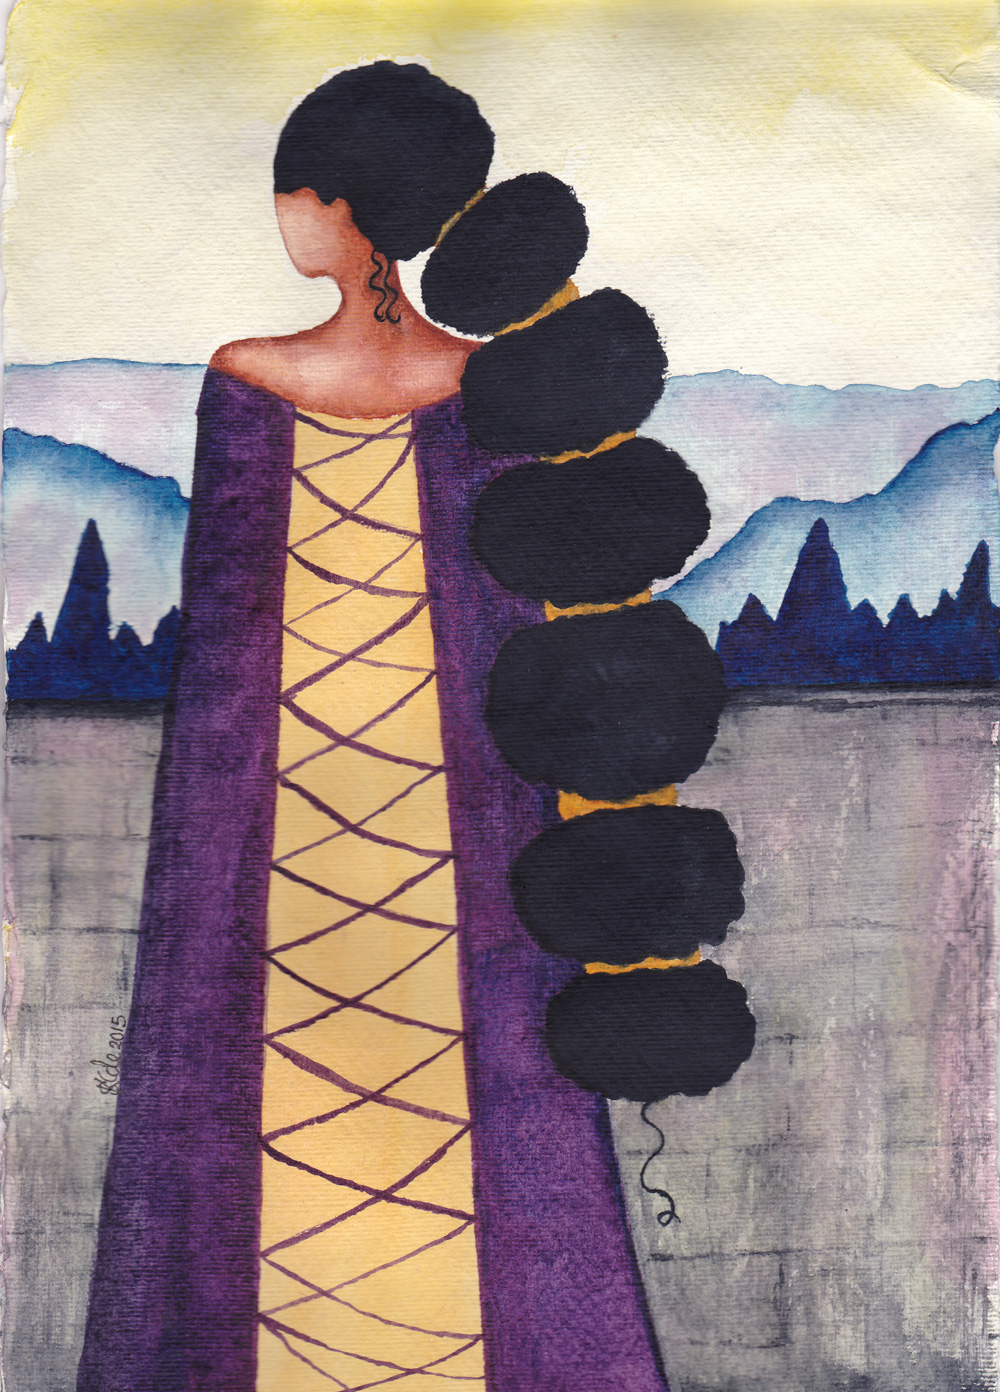 'Queen' Black / African American Watercolour Art